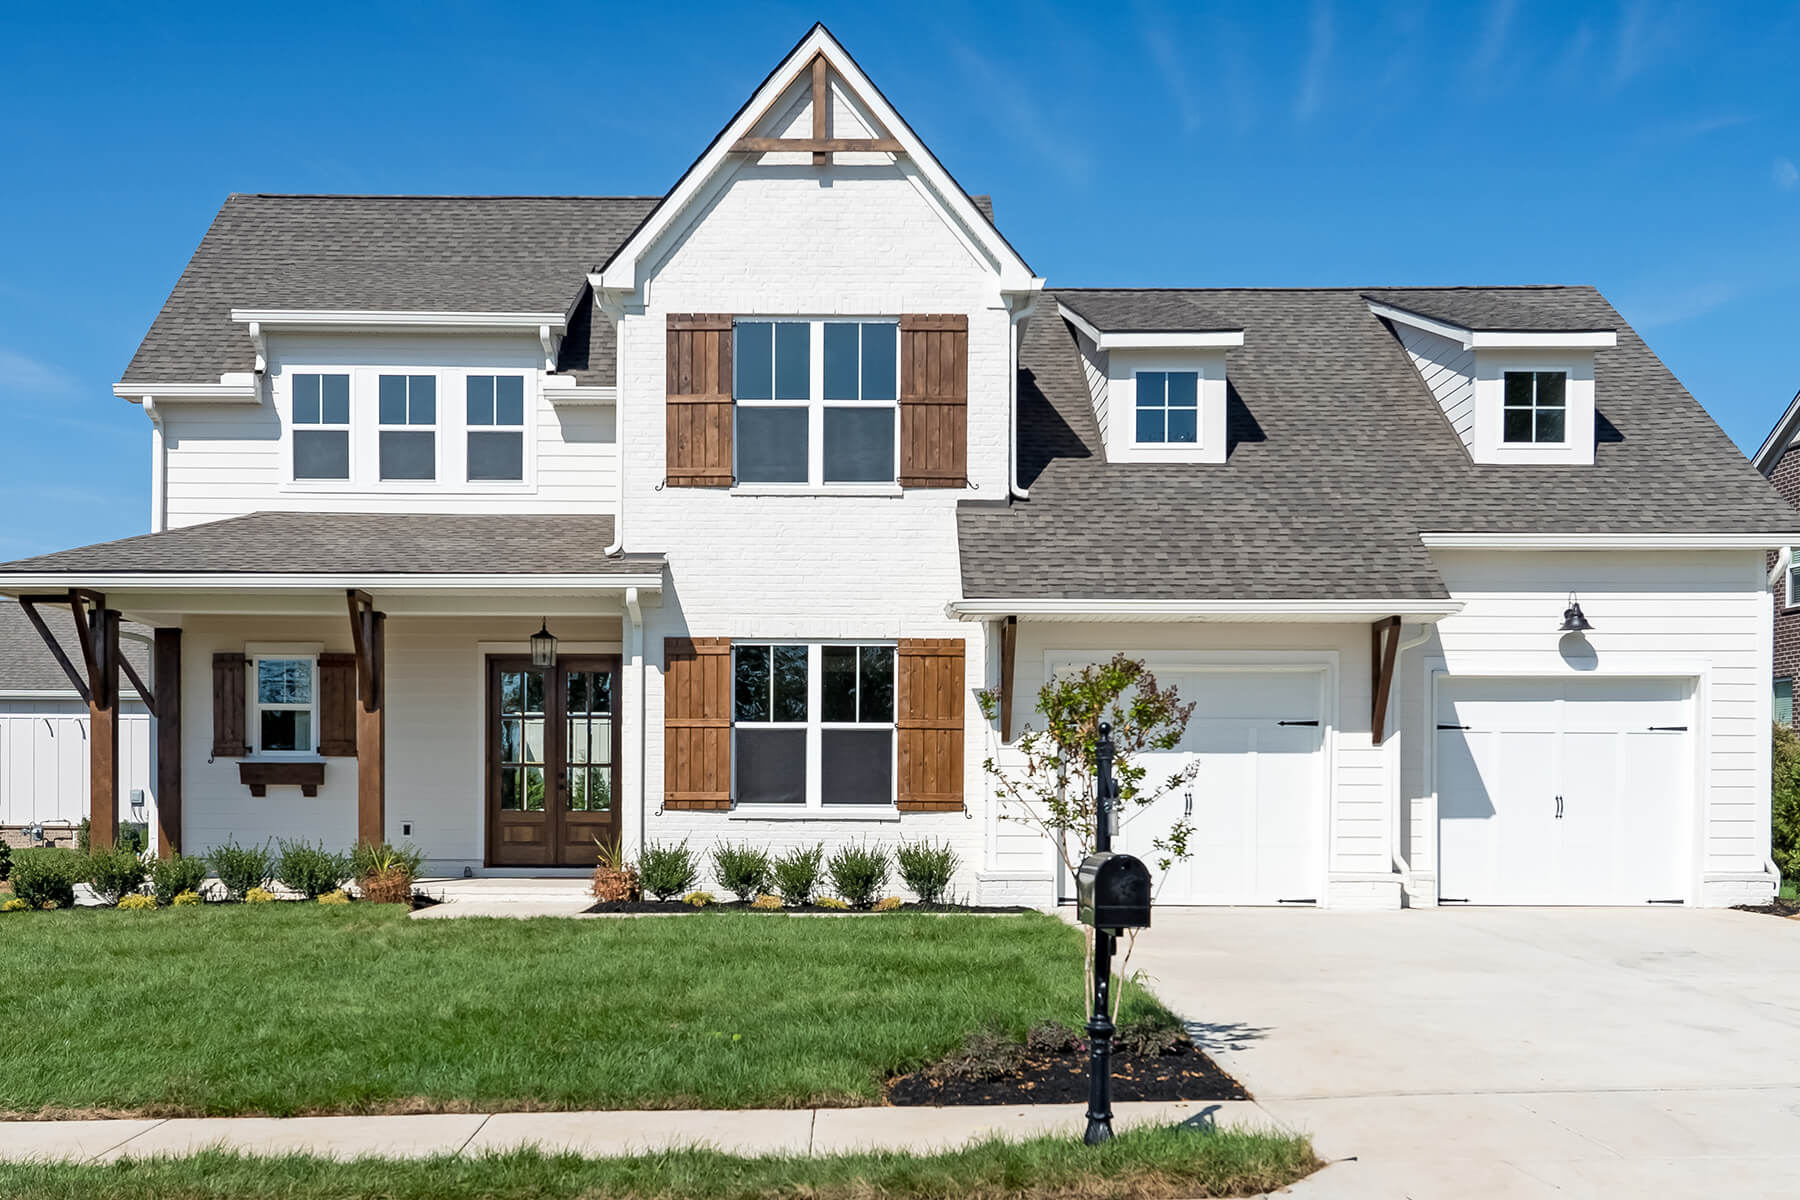 70' Lots by Grandview Custom Homes - Durham Farms New Homes for Sale in Hendersonville, TN